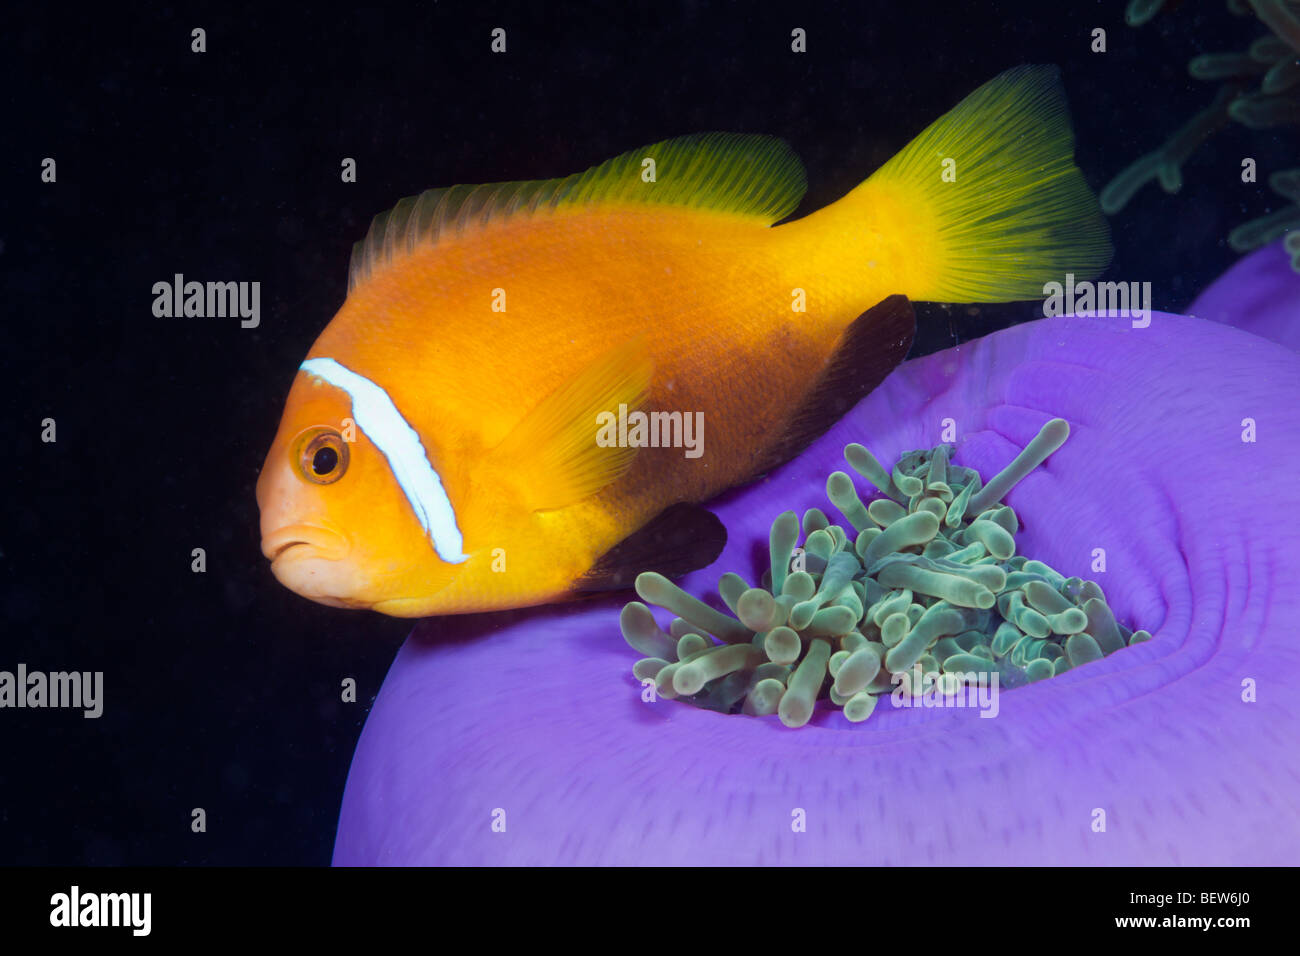 Les Maldives poisson clown Anémone magnifique Amphiprion nigripes Heteractis magnifica South Male Atoll Maldives Photo Stock